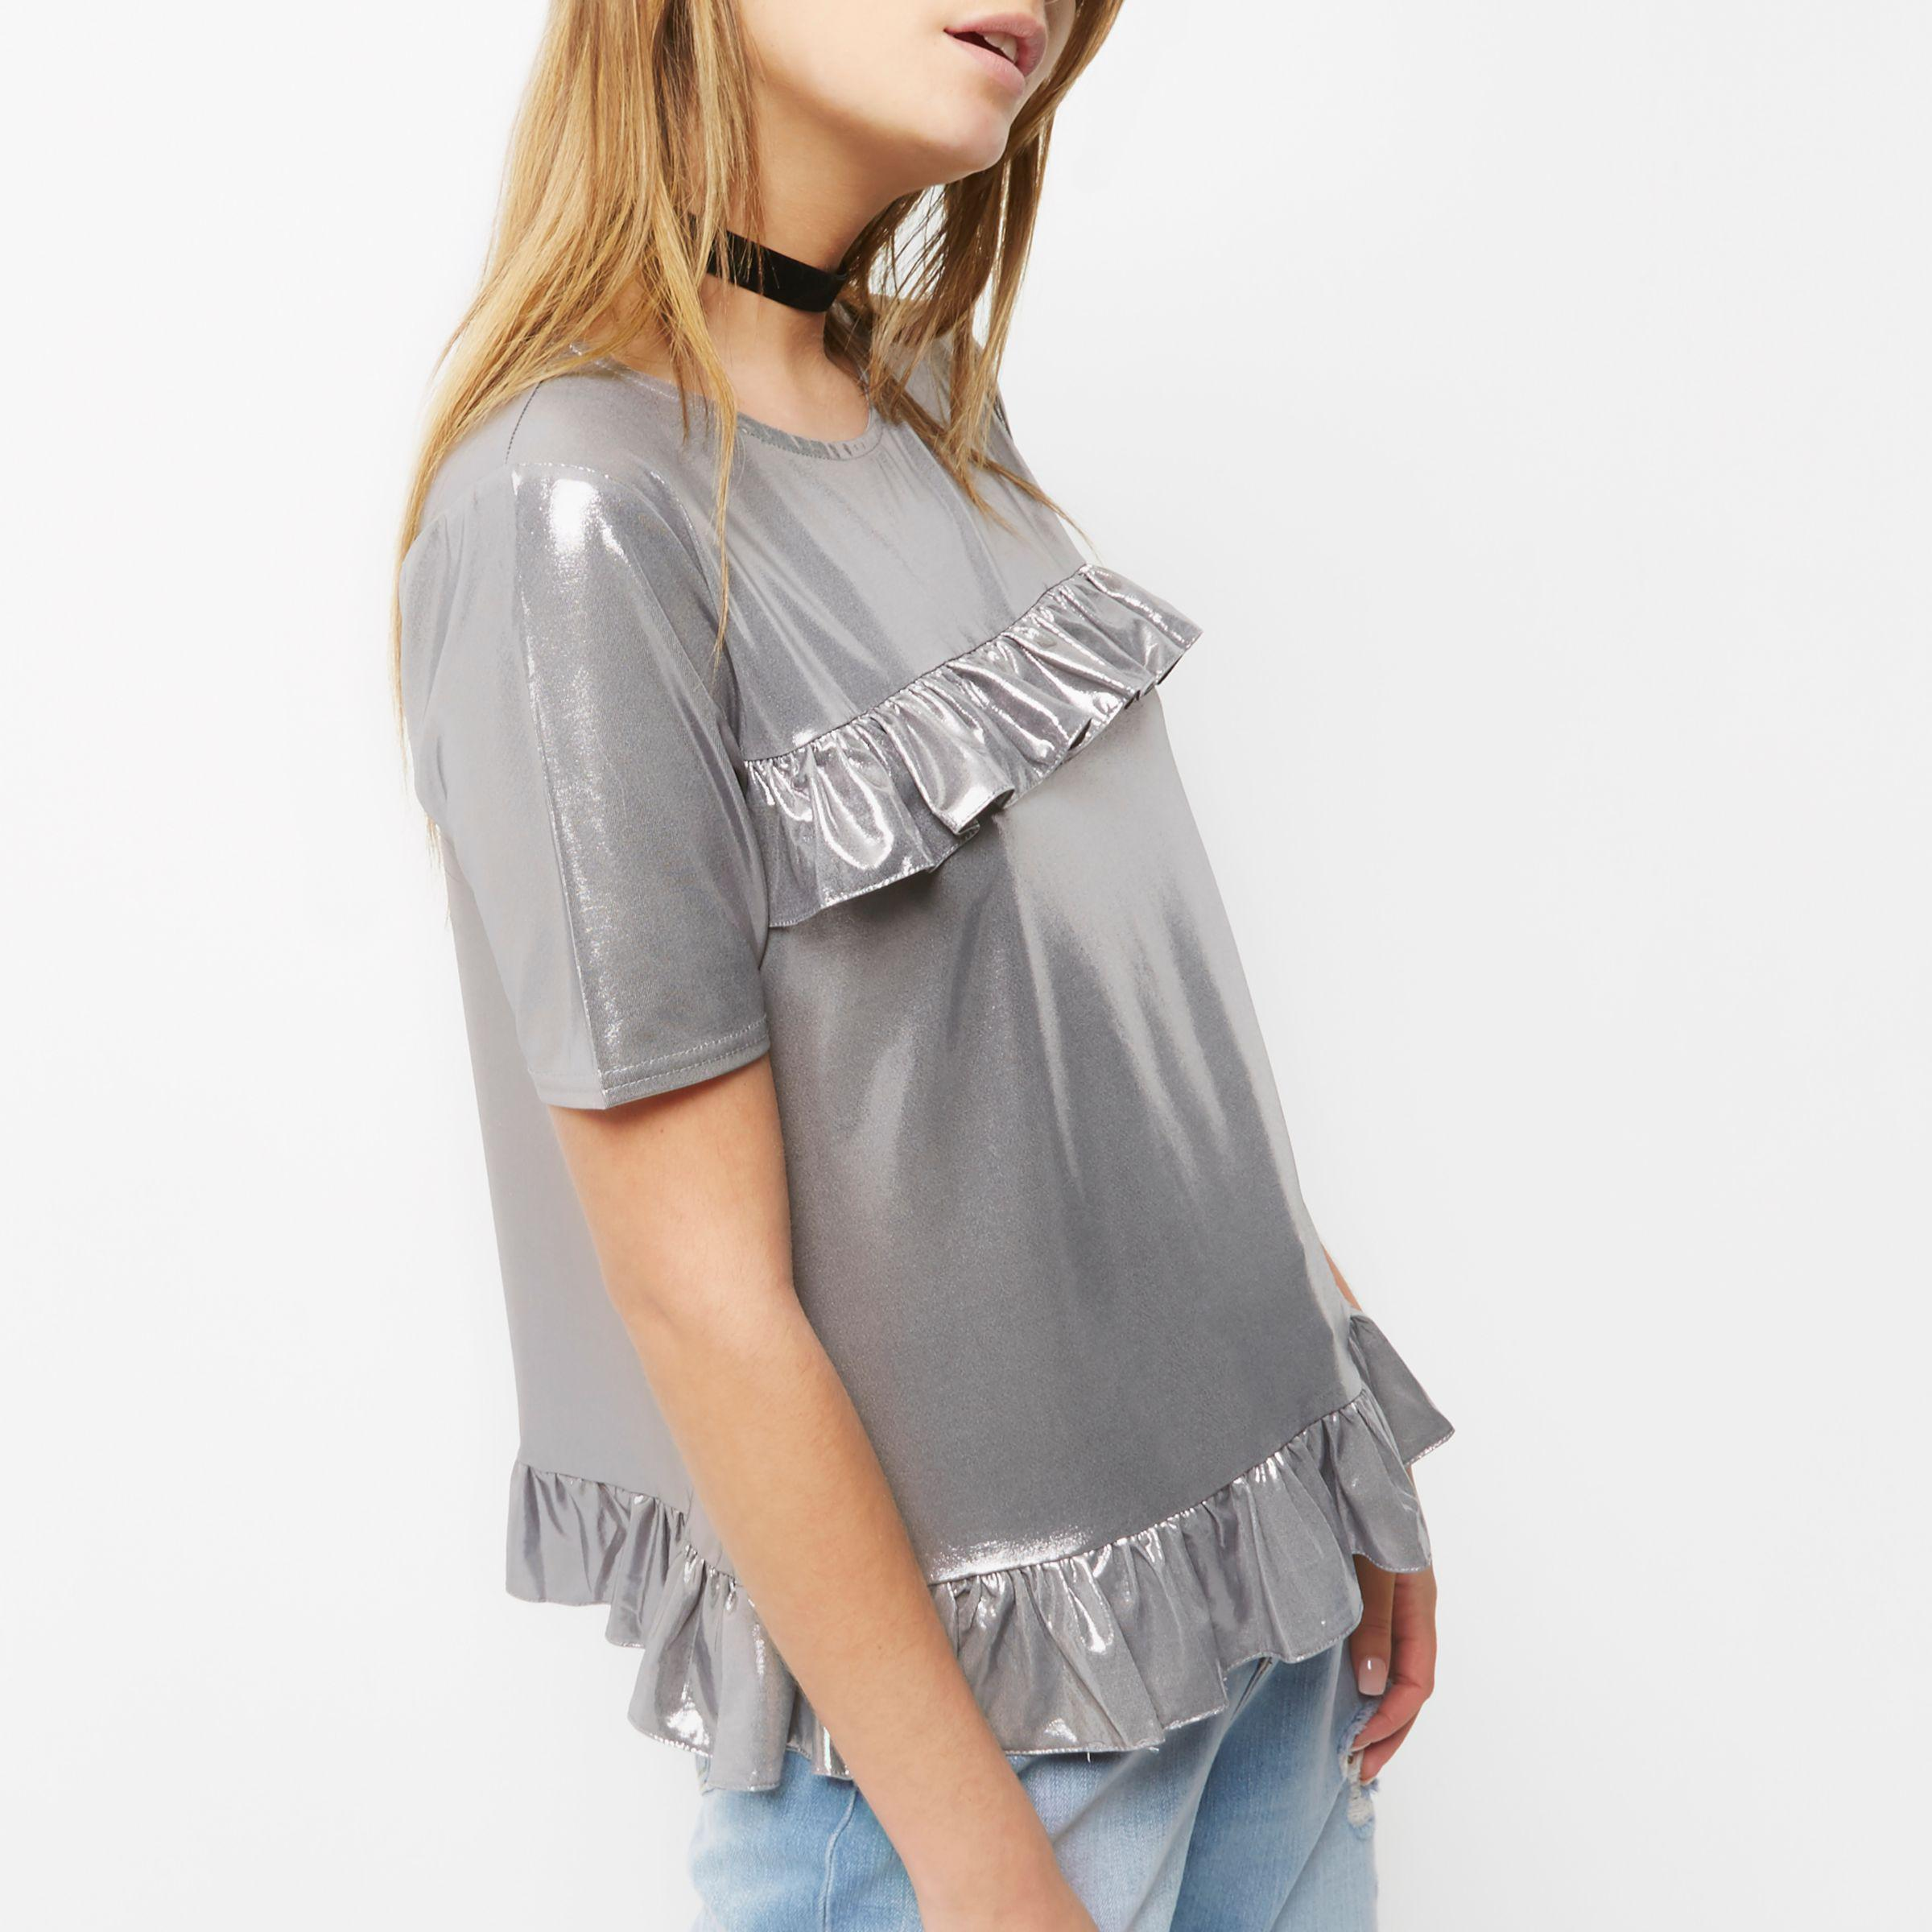 24356127e24 Lyst - River Island Silver Metallic Frill Front T-shirt in Metallic